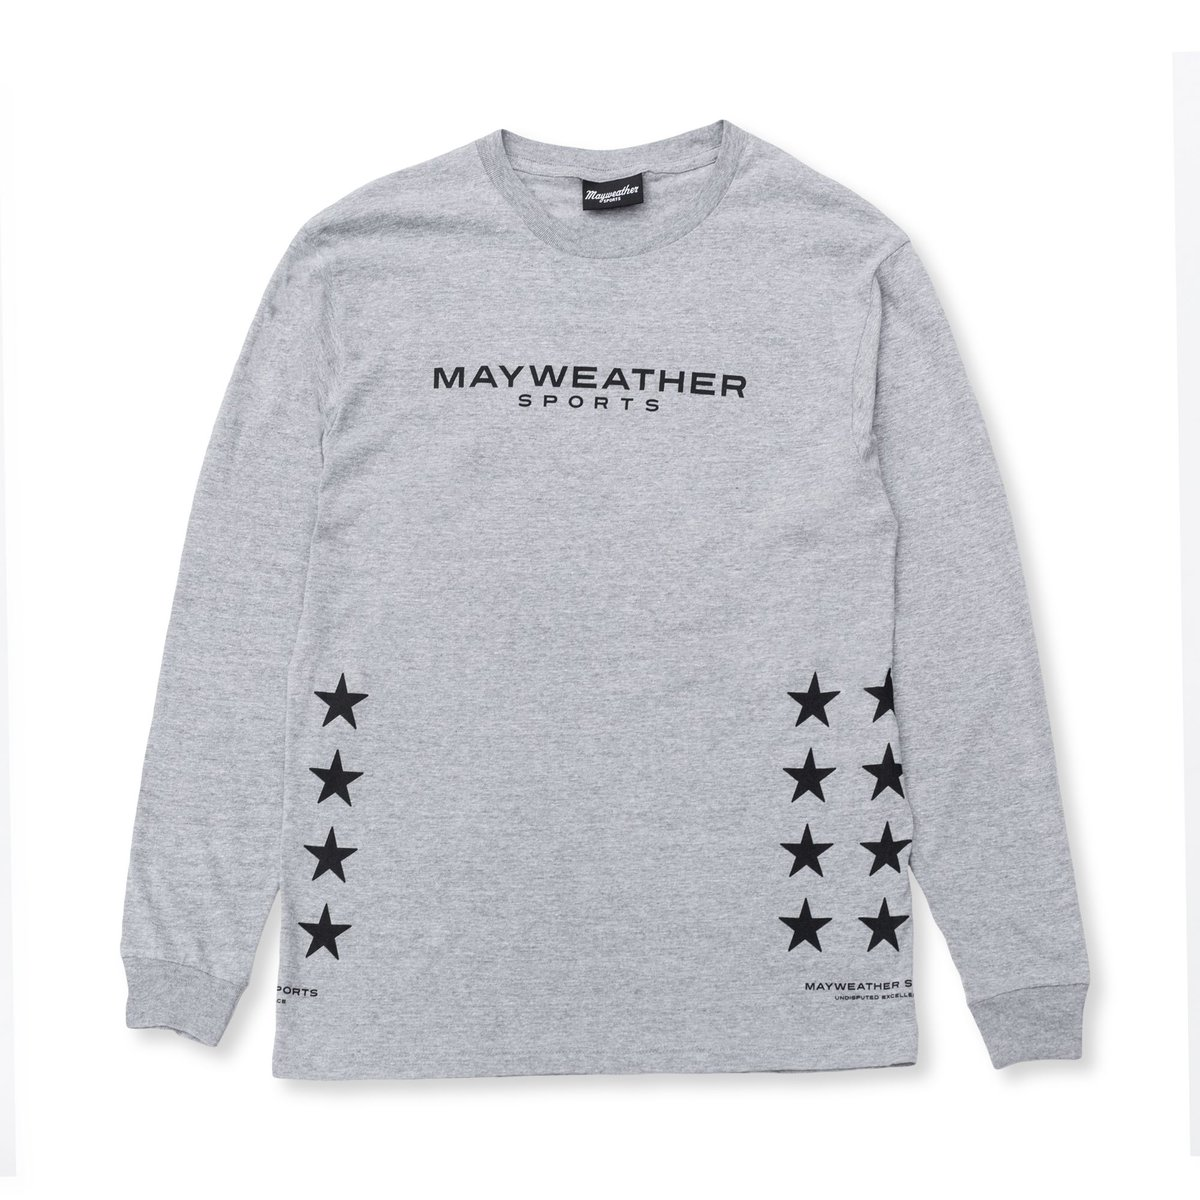 test Twitter Media - Grab these @mayweathersprts crewnecks NOW before they sell out! 🔥 https://t.co/L1HVry2Qdk https://t.co/hSNEPt6IEA